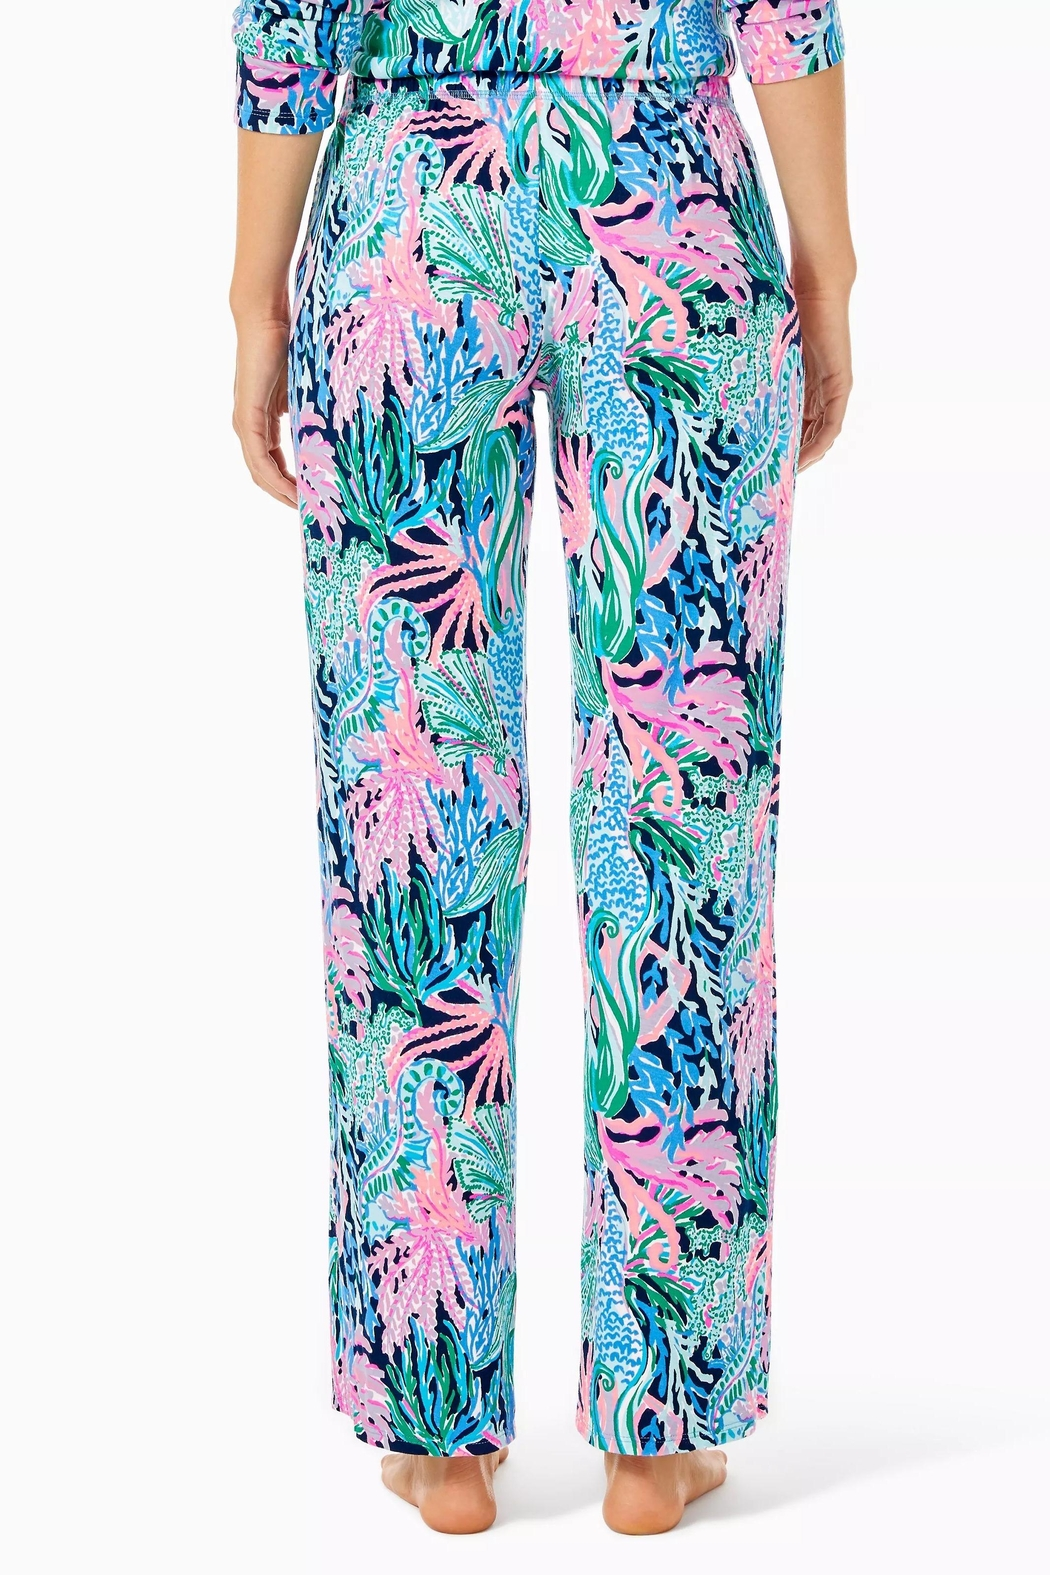 Lilly Pulitzer Pj Knit Pant - Front Full Image